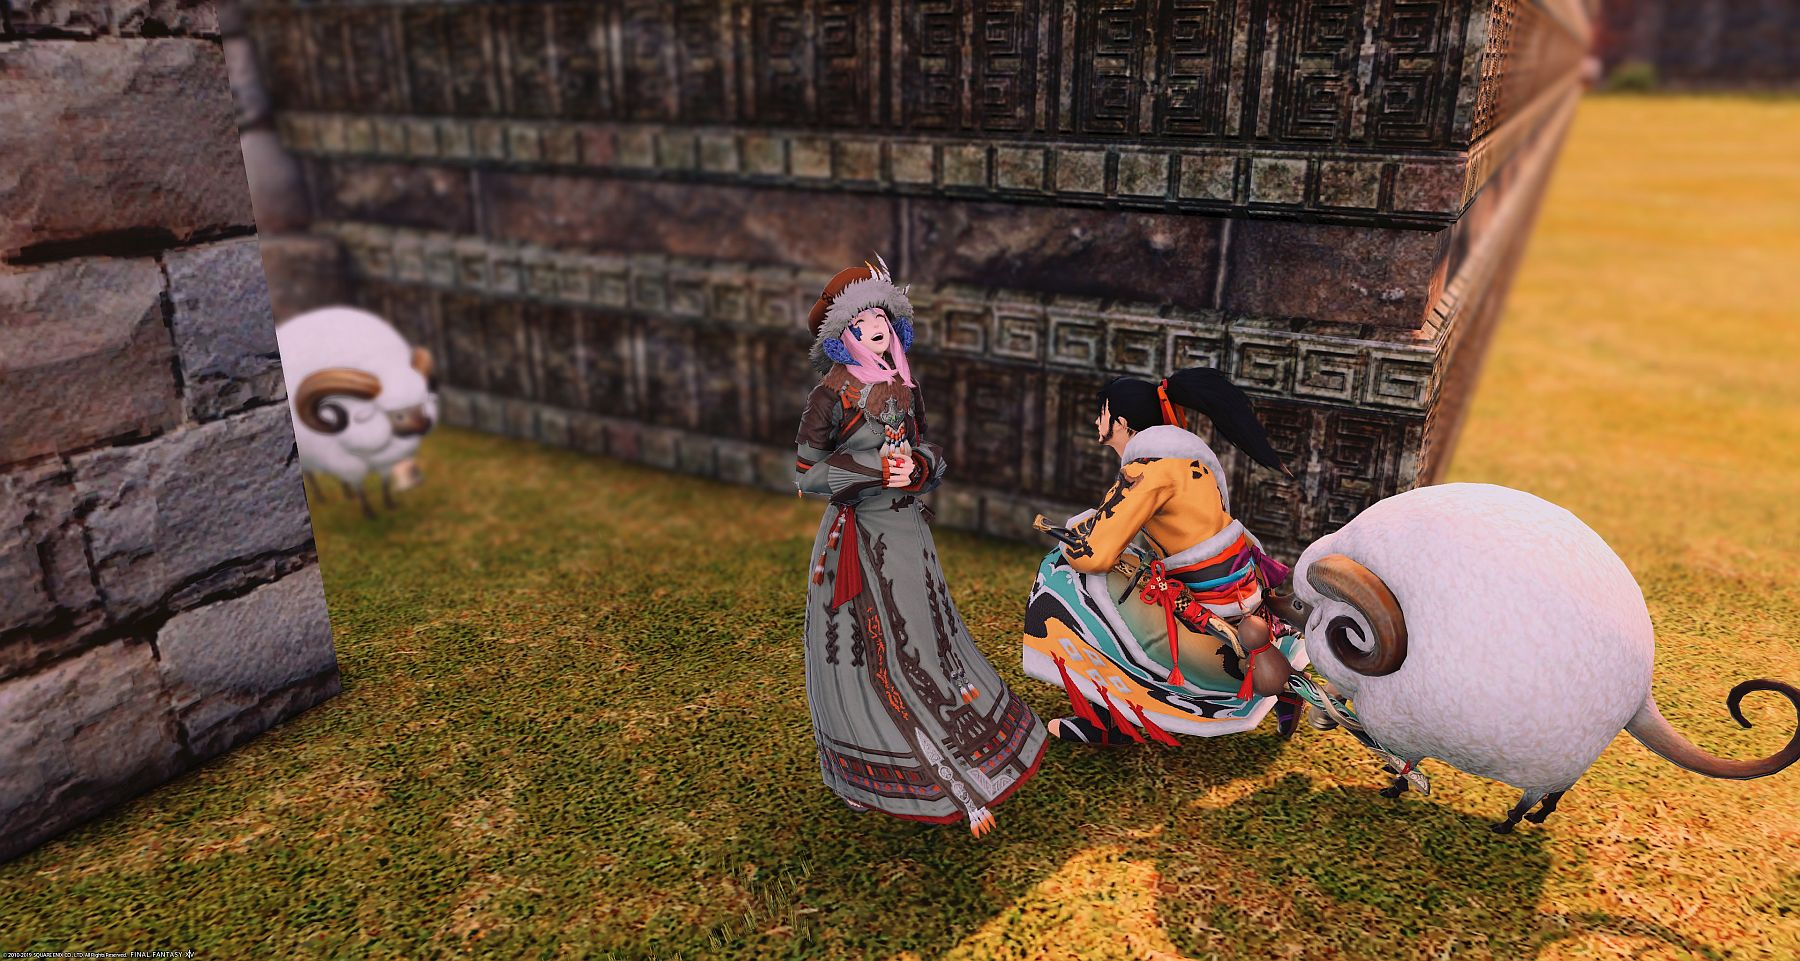 Ffxiv Alt Leveling a week in ffxiv: [5/14 – 5/20/2019] – かわいいじゃなきゃダメ